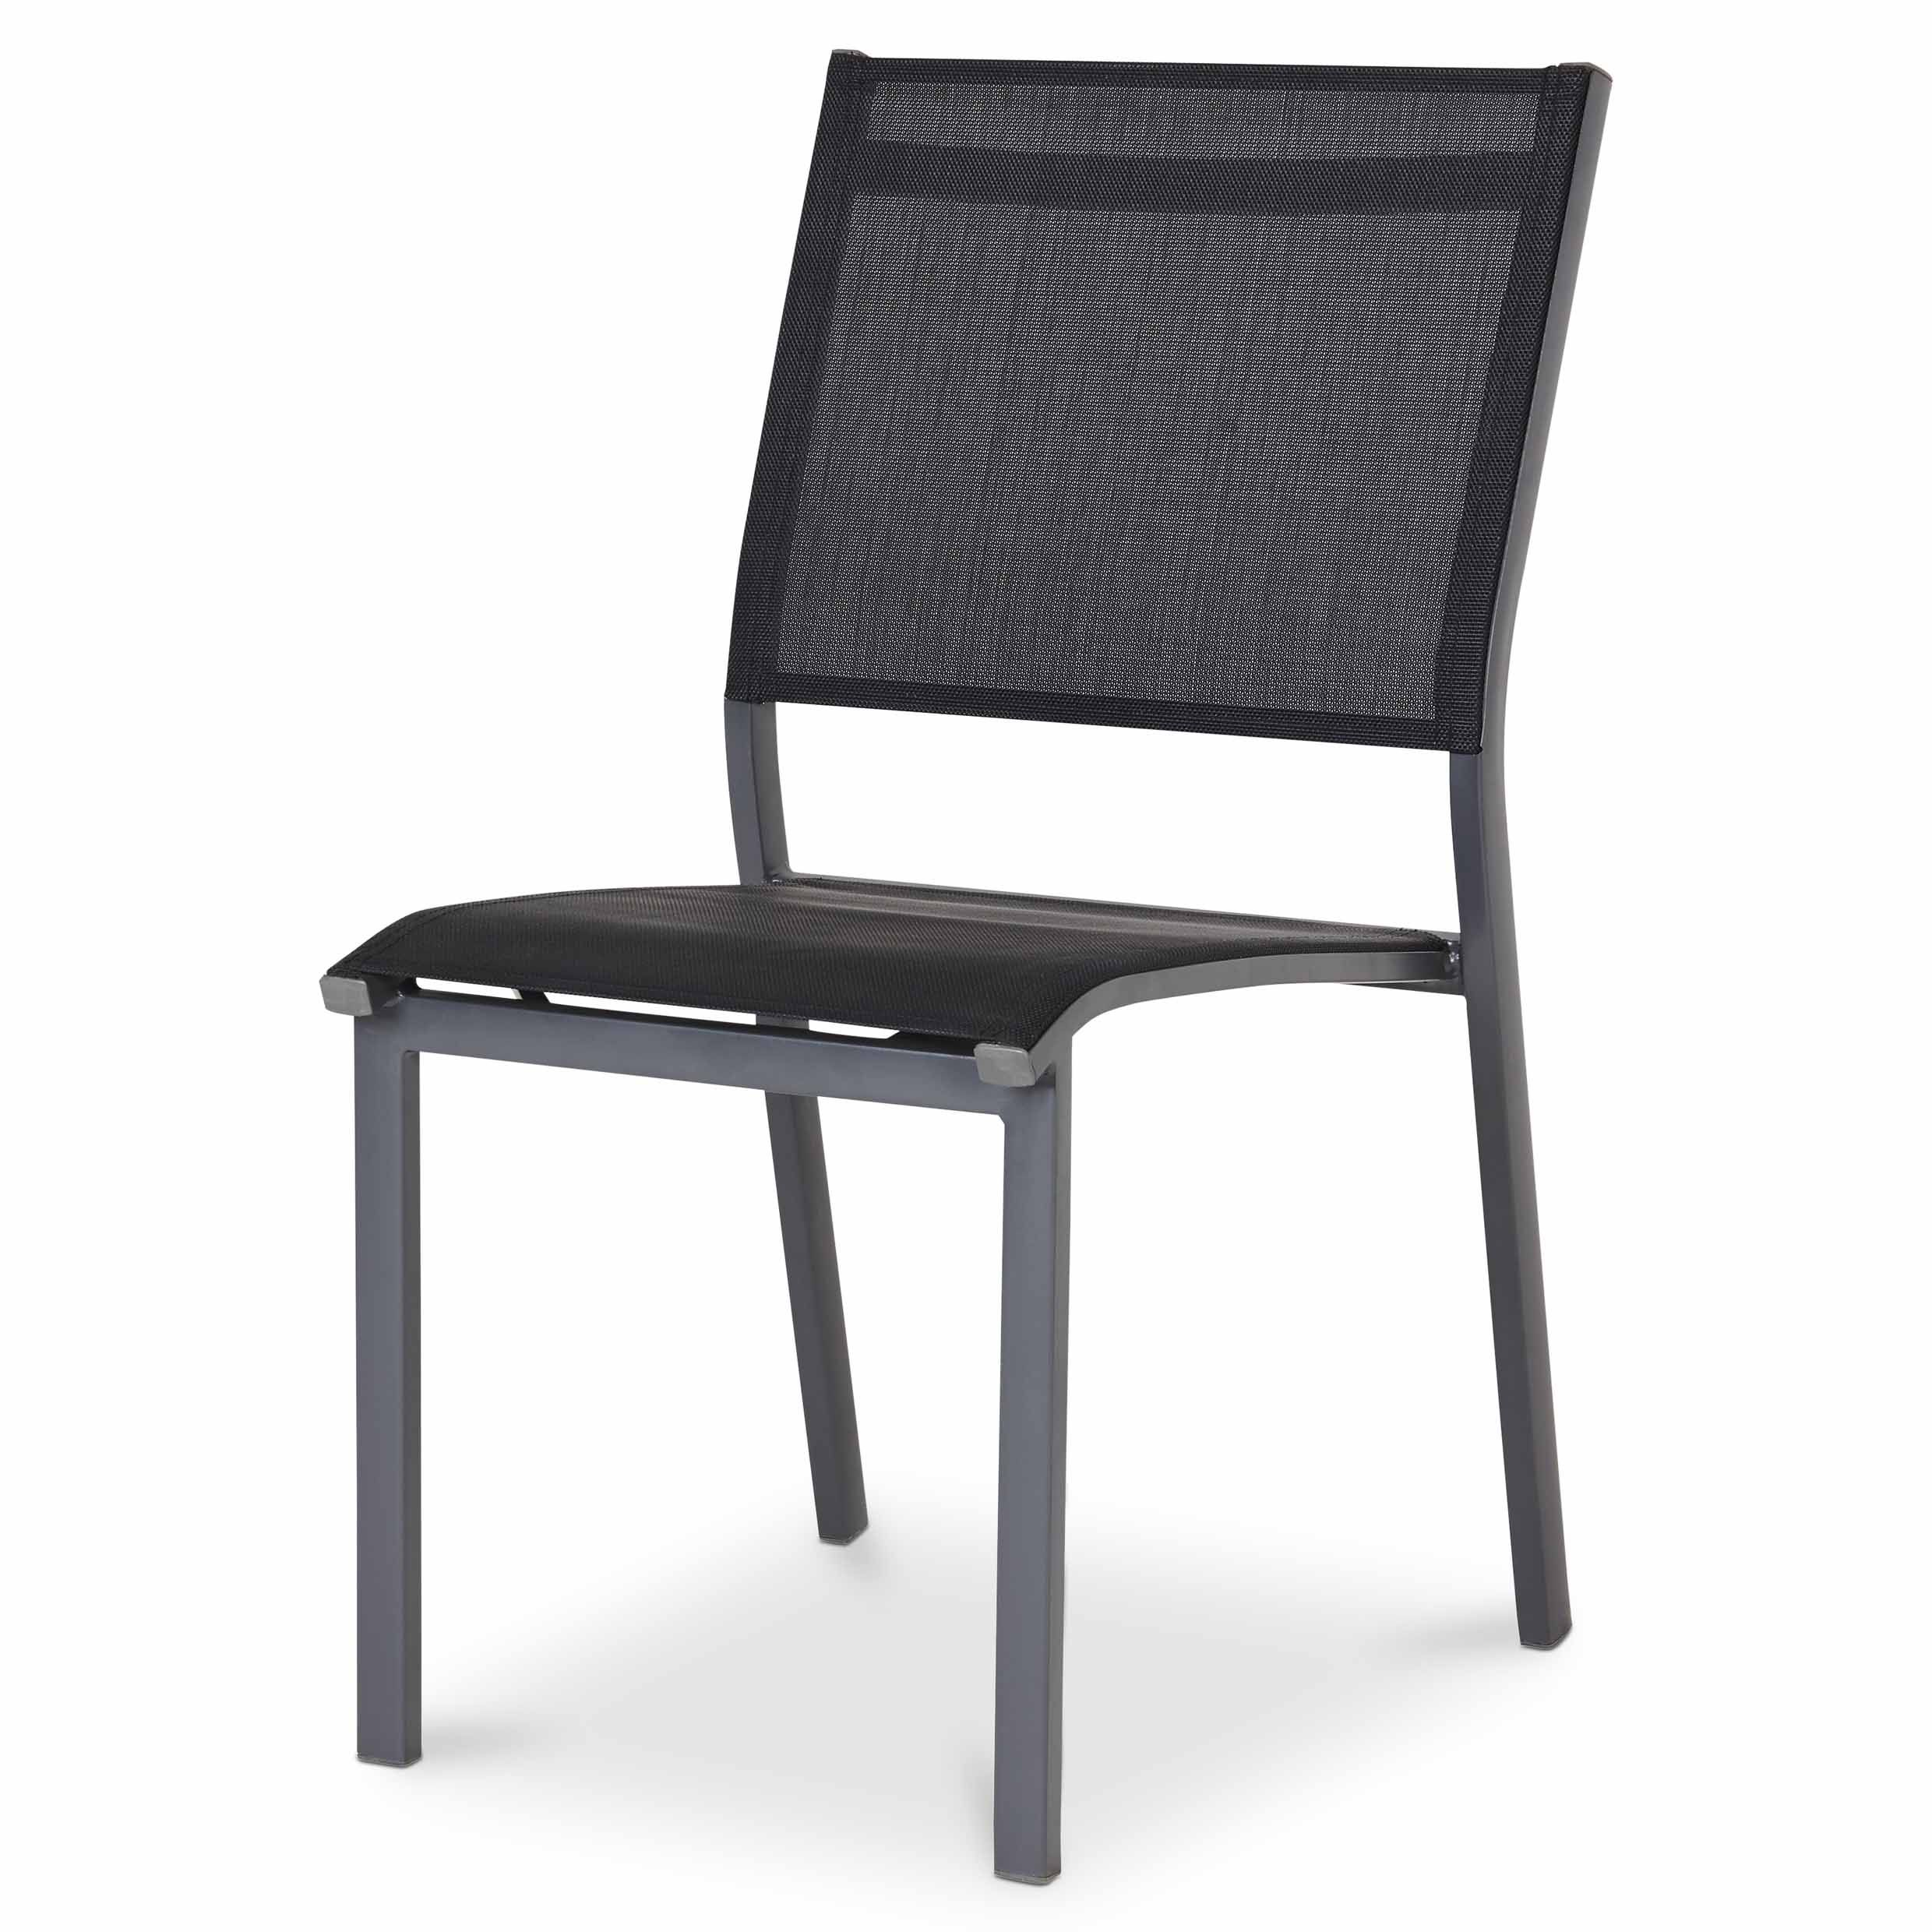 outdoor metal chair. batz metal chair outdoor t